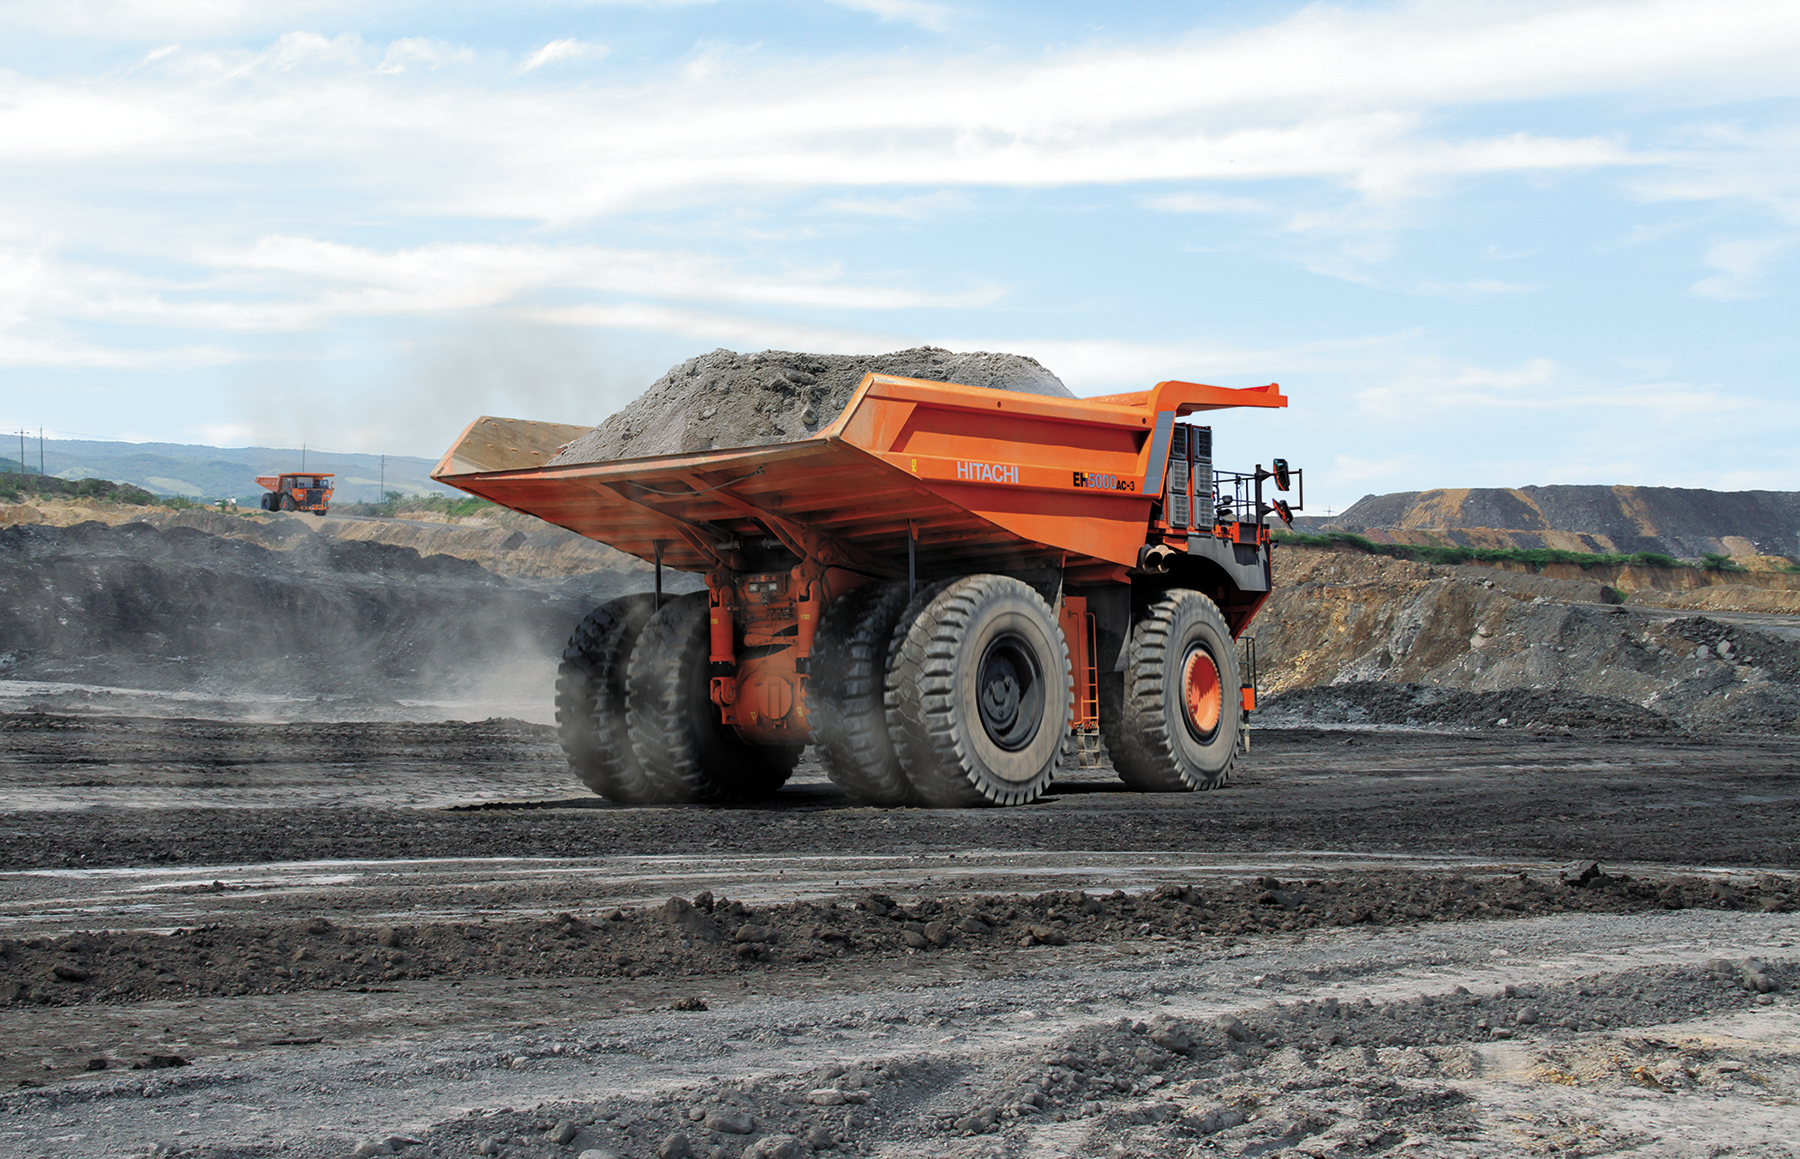 Wenco International Mining Systems announces the successful completion of trials of Hitachi Construction Machinery's autonomous mine haul trucking program developed in conjunction with Wencomine dynamic dispatch fleet management software.